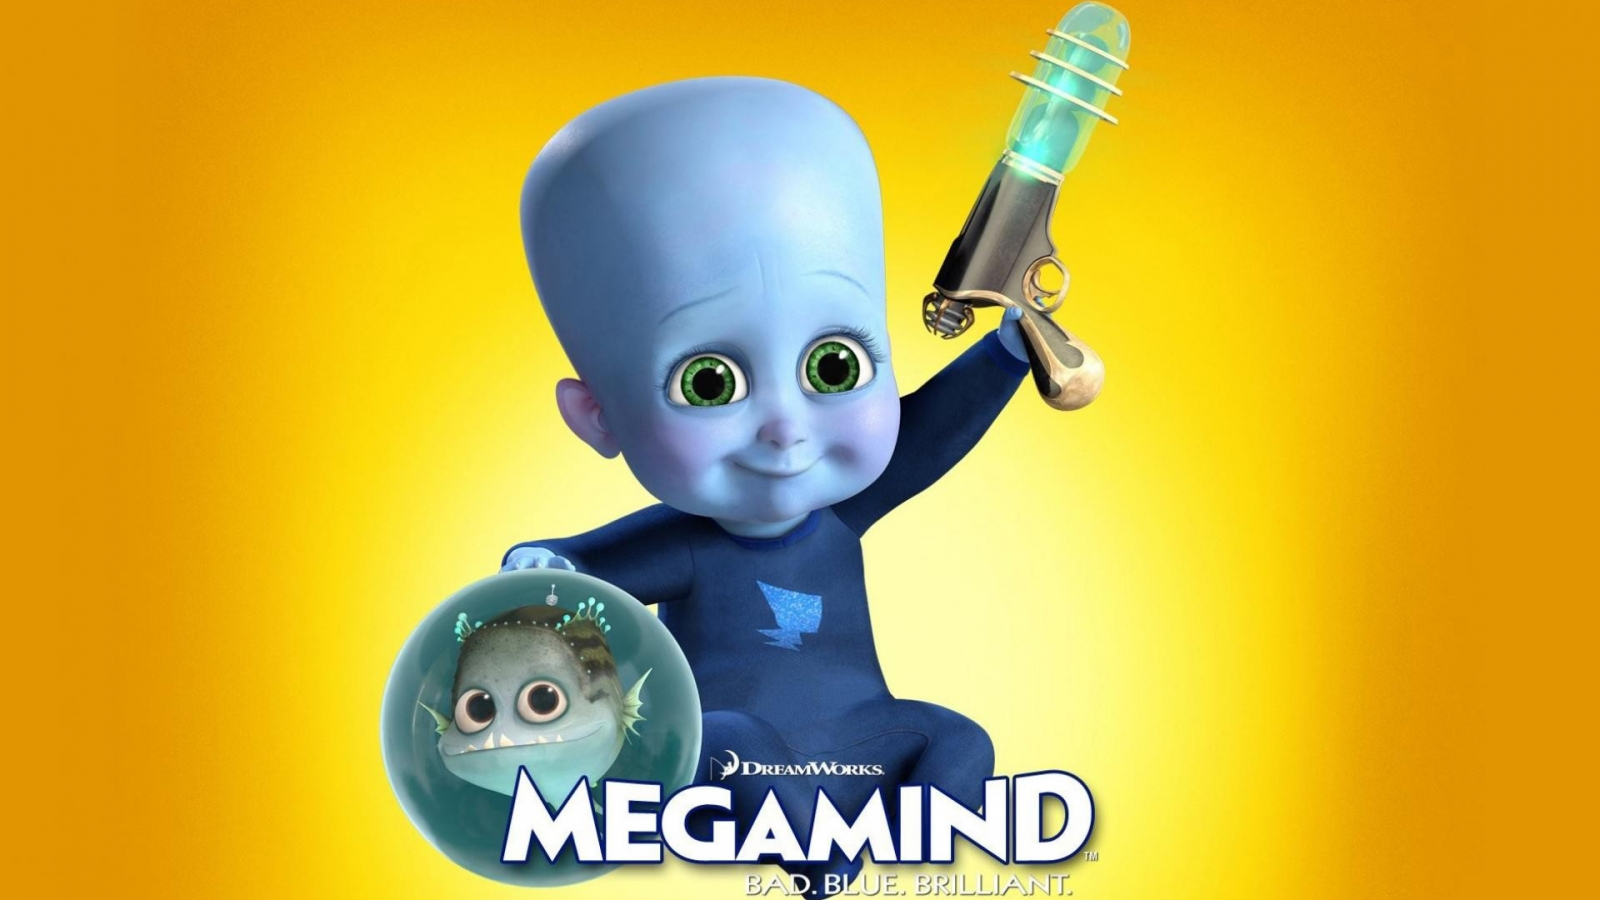 Megamind Child for 1600 x 900 HDTV resolution